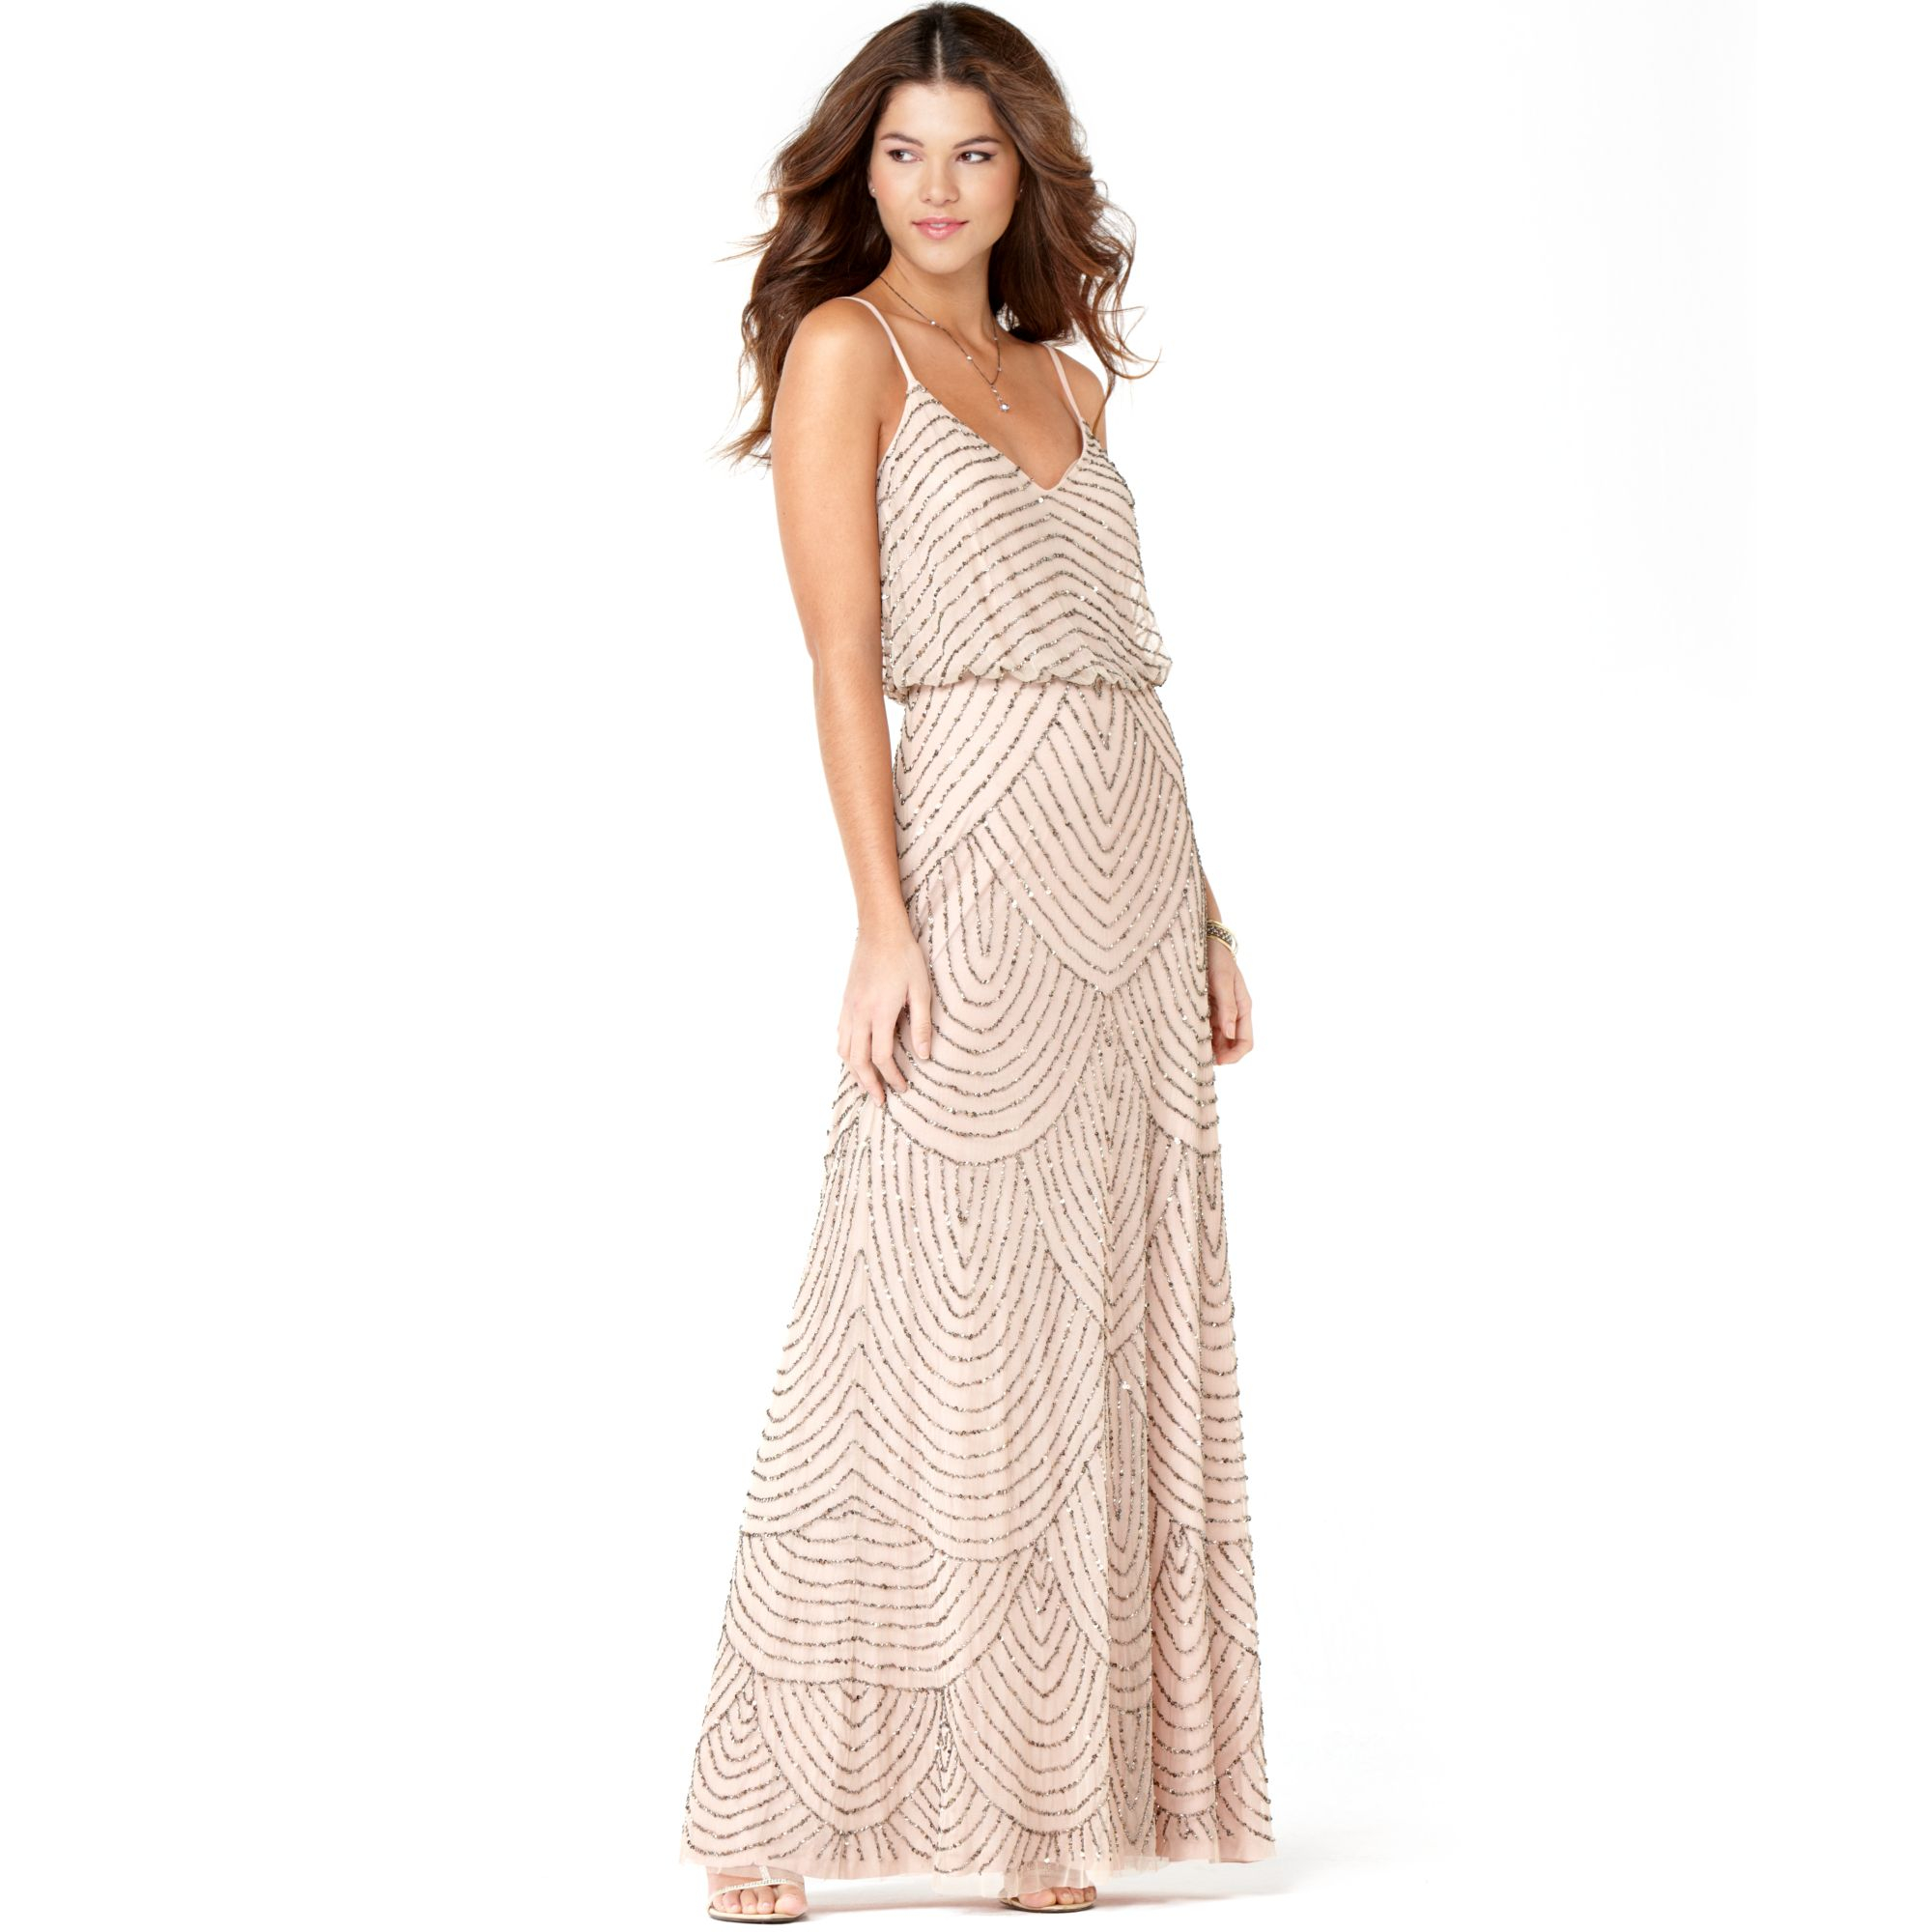 macys maternity dresses photo - 1